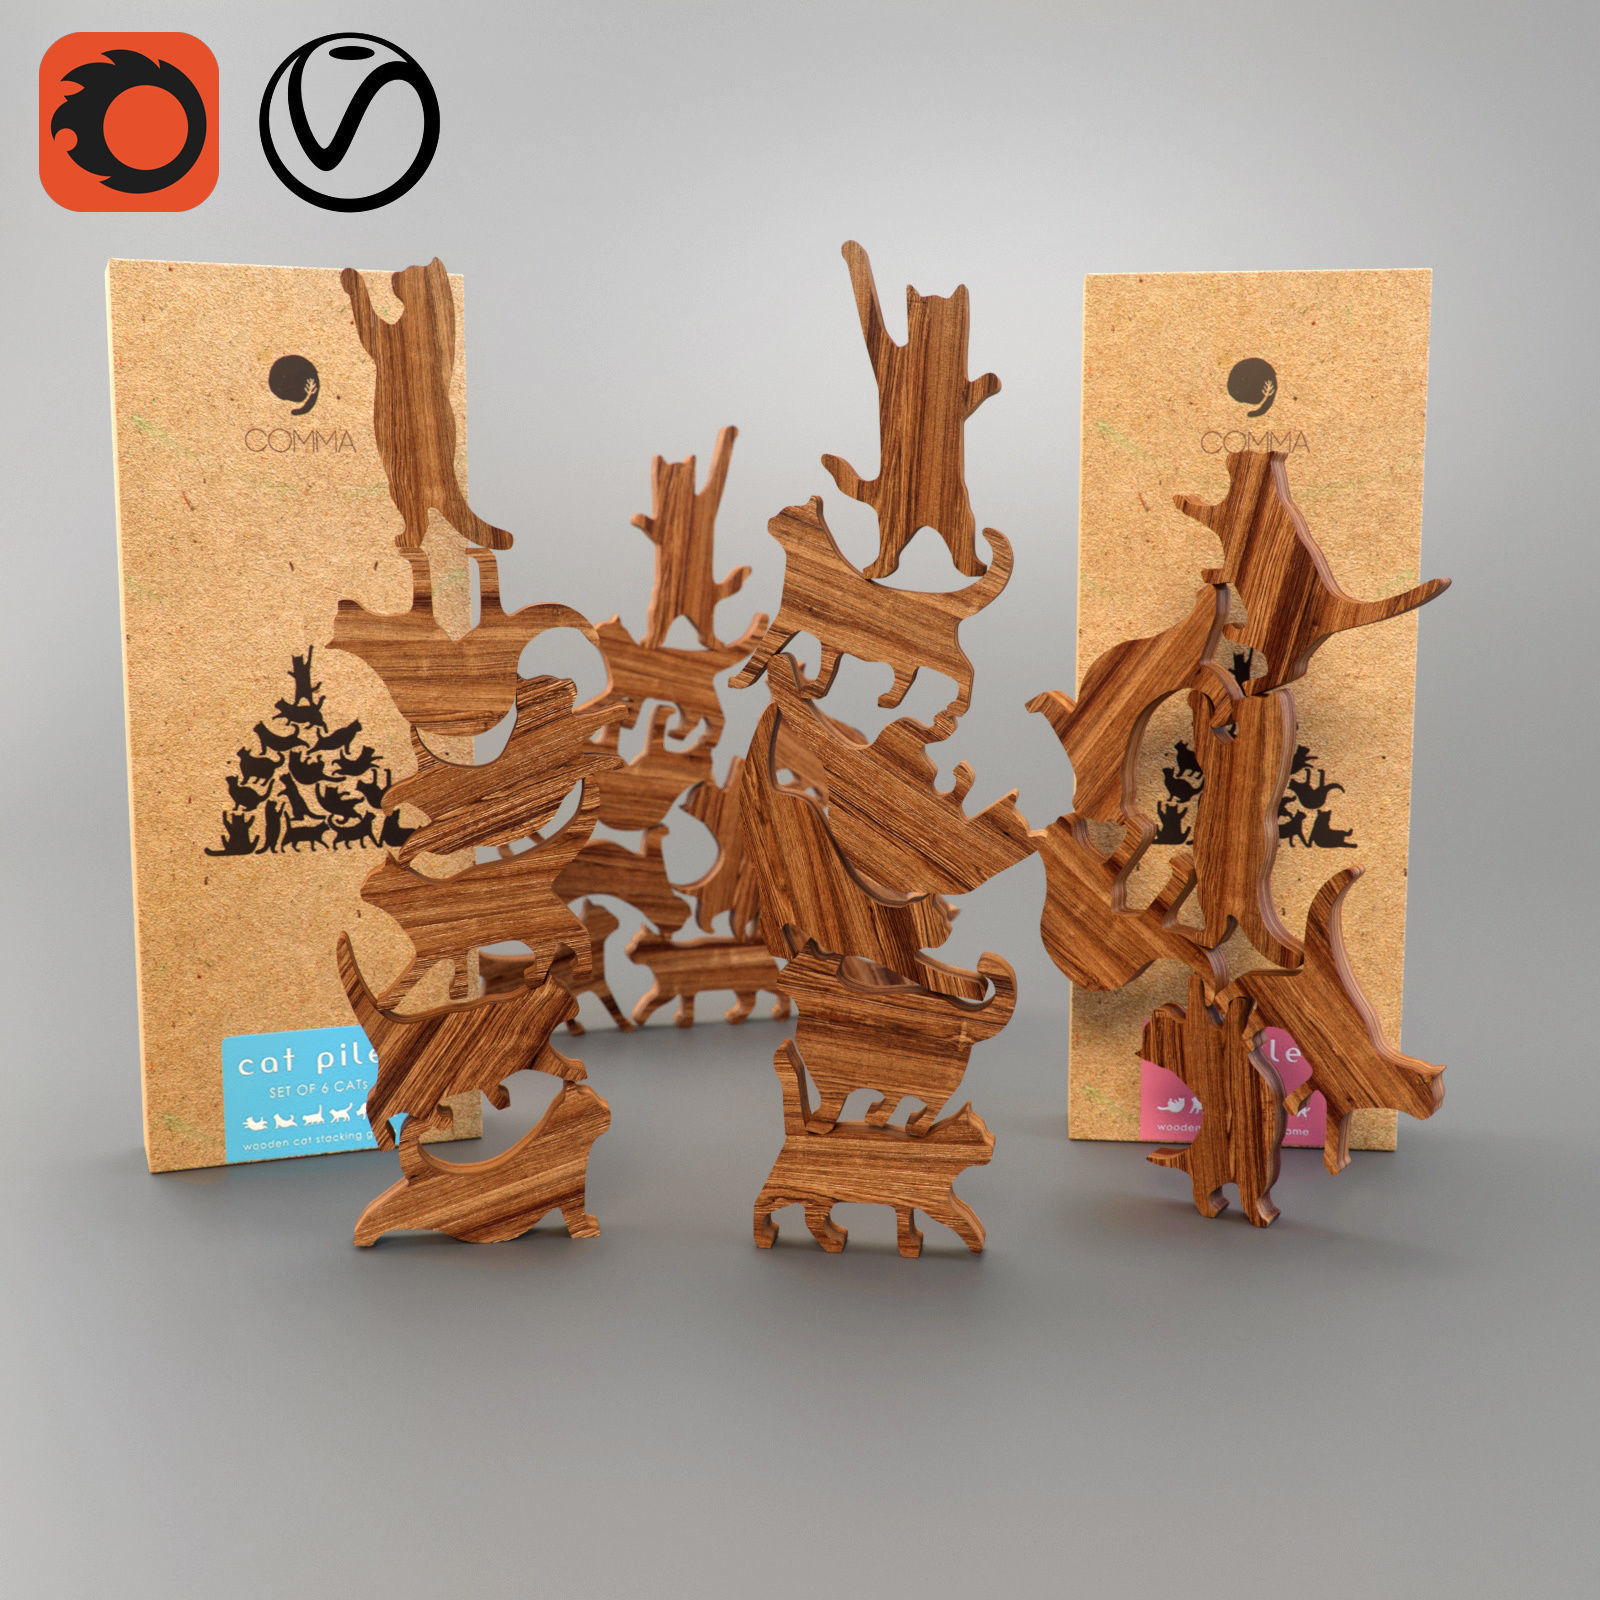 3d model comma cat pile plus wooden puzzle cgtrader